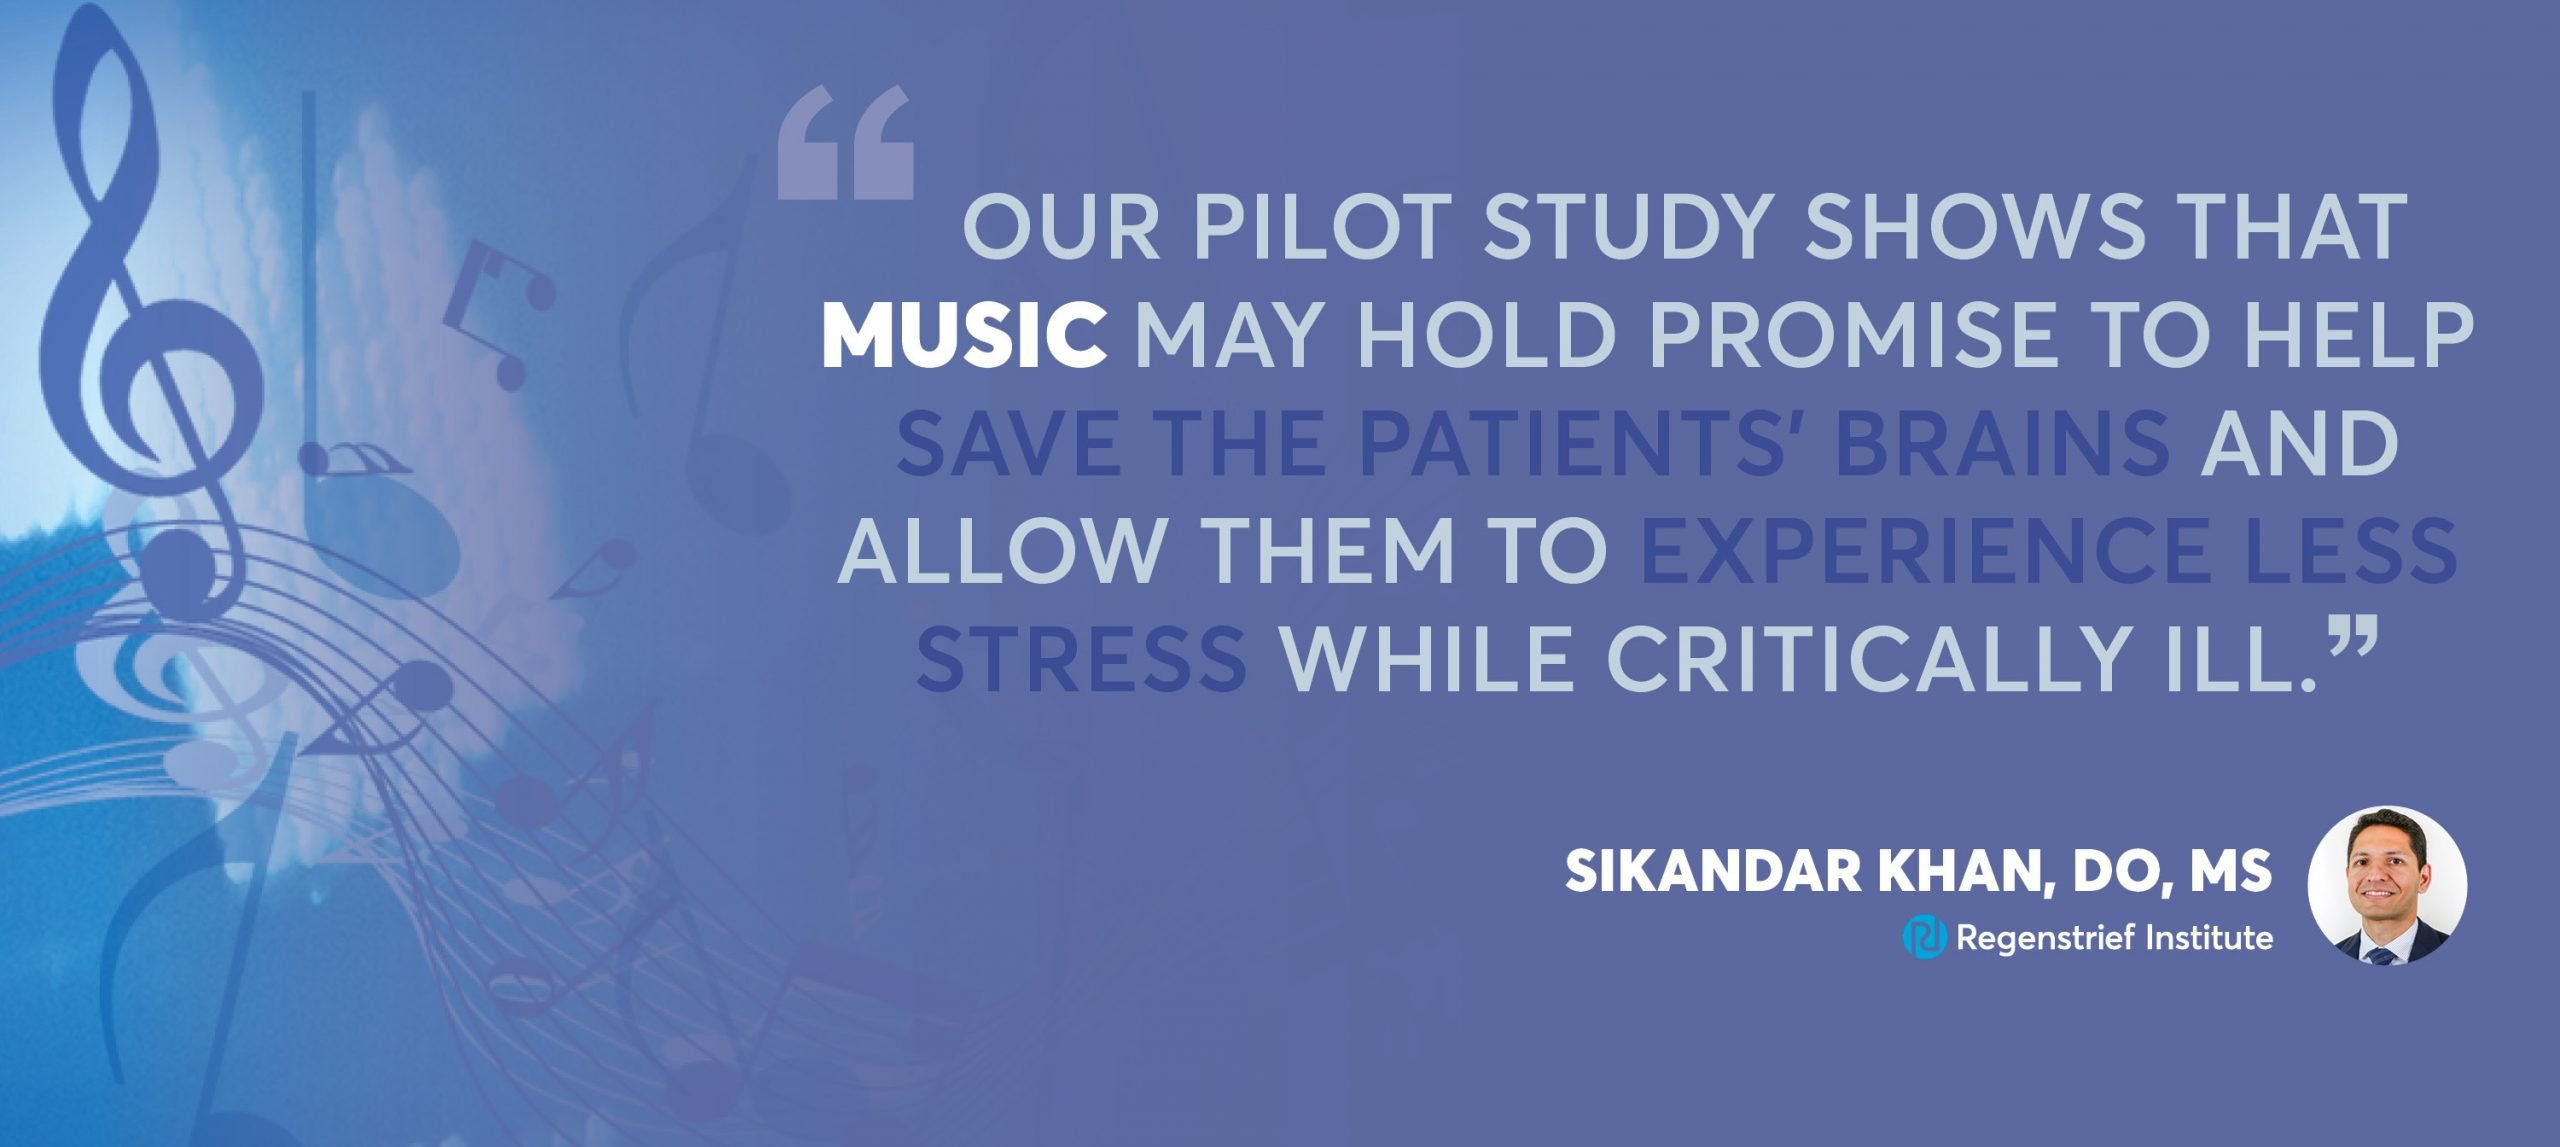 Music shows promise in decreasing delirium in critically ill patients